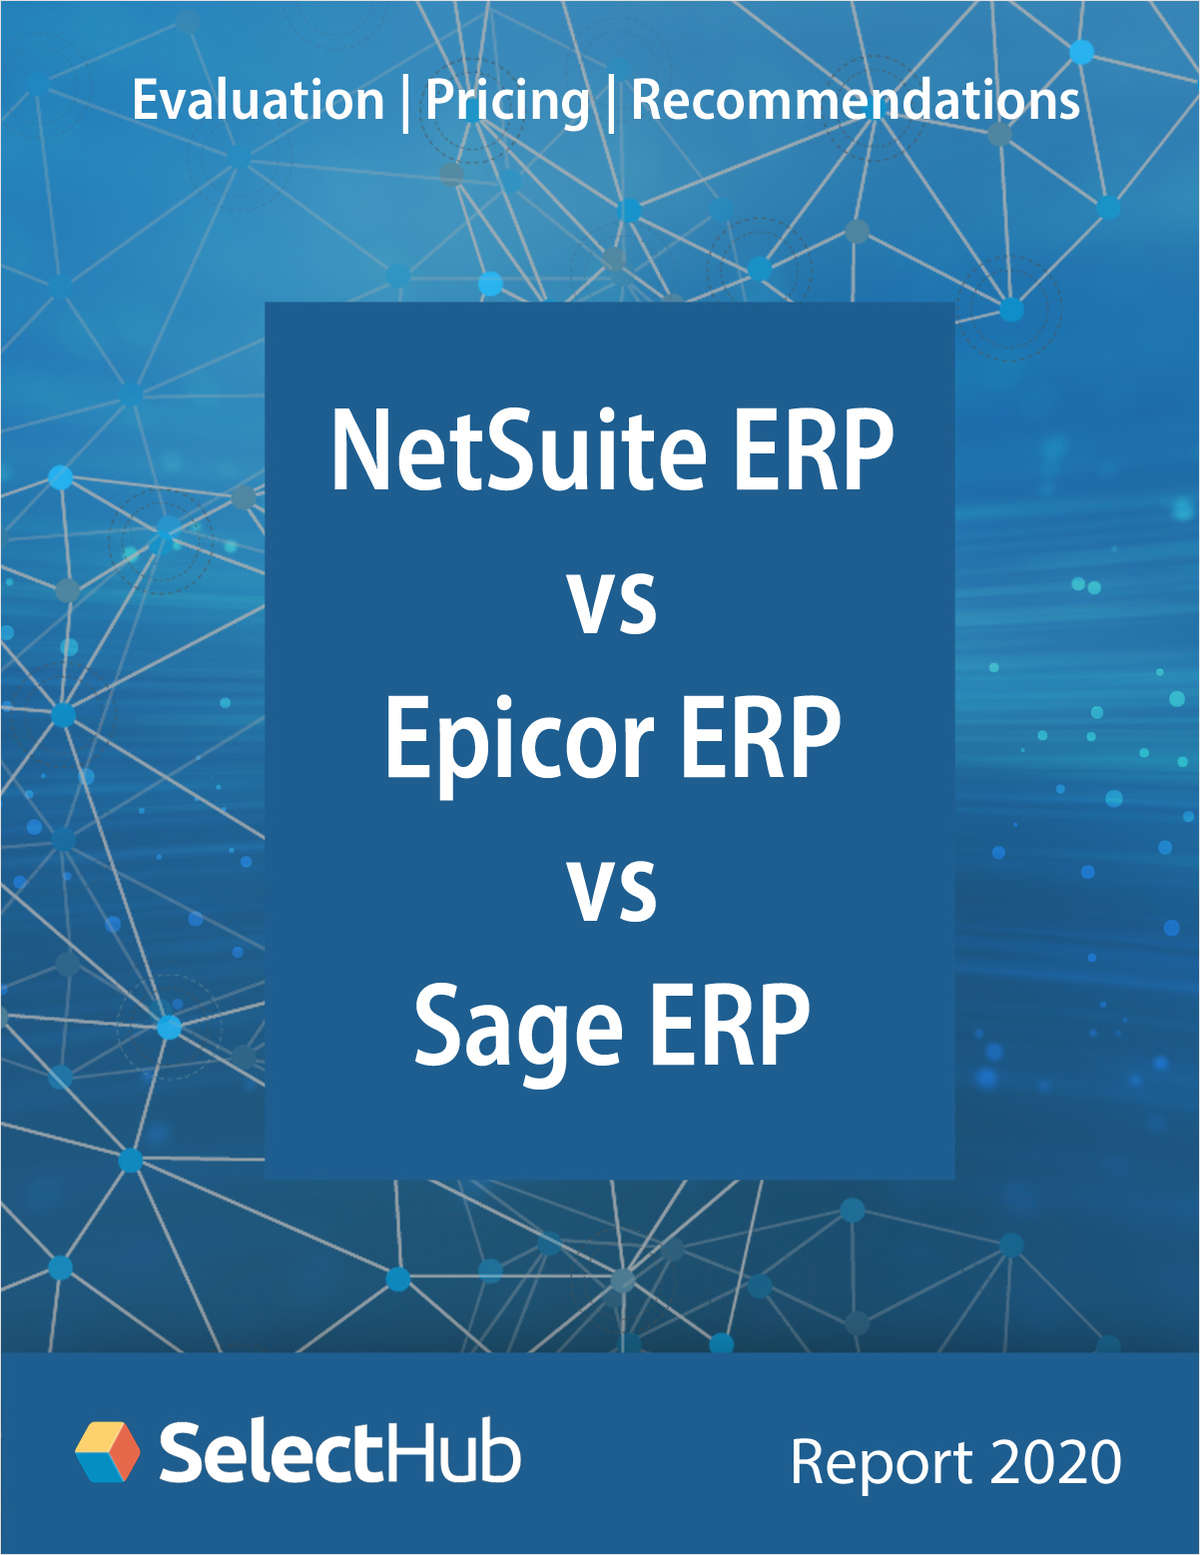 NetSuite ERP vs. Epicor ERP vs. Sage ERP― Expert Evaluations, Pricing & Recommendations